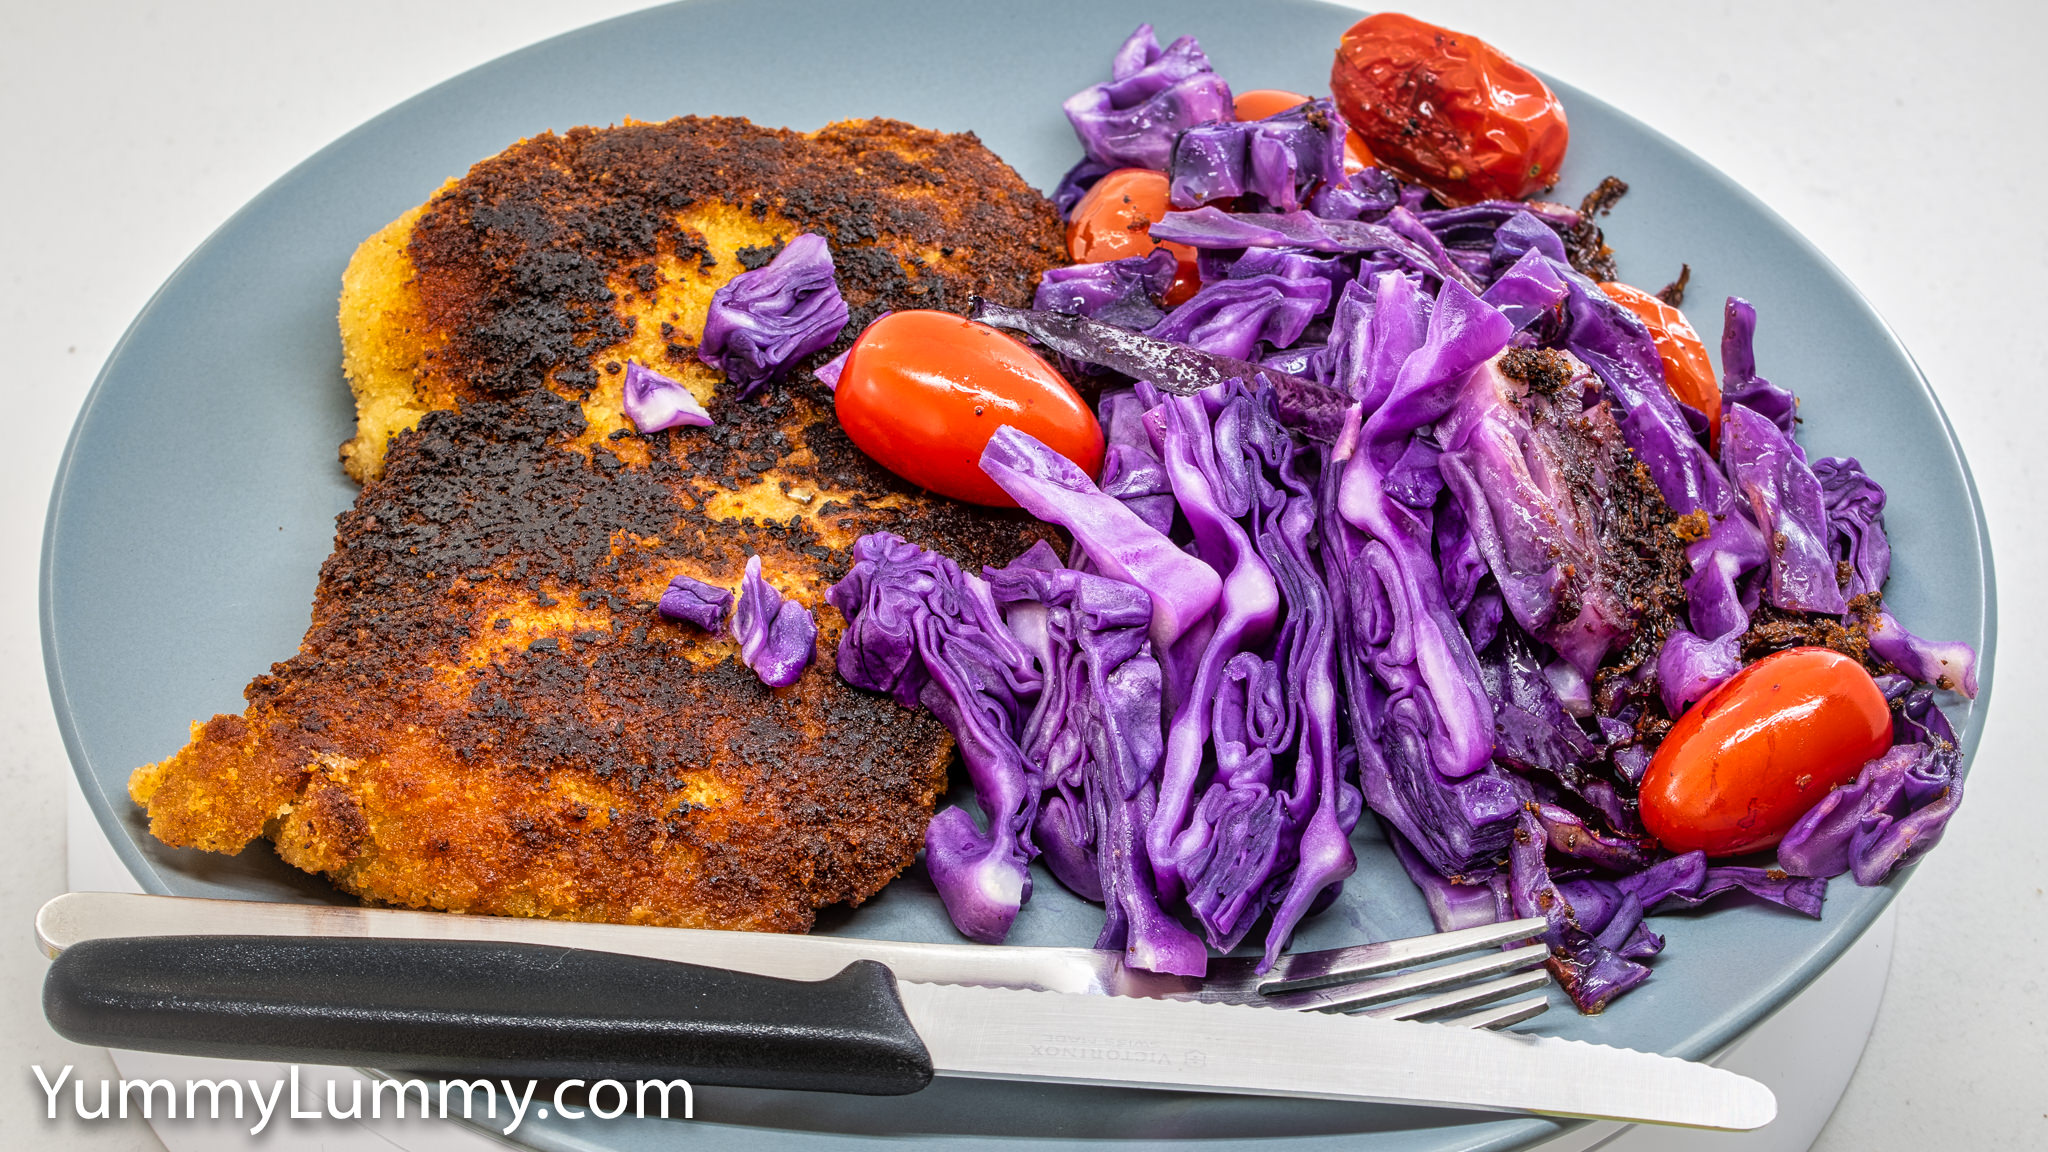 Chicken thigh schnitzel, steamed red cabbage, and steamed cherry tomatoes. Gary Lum.